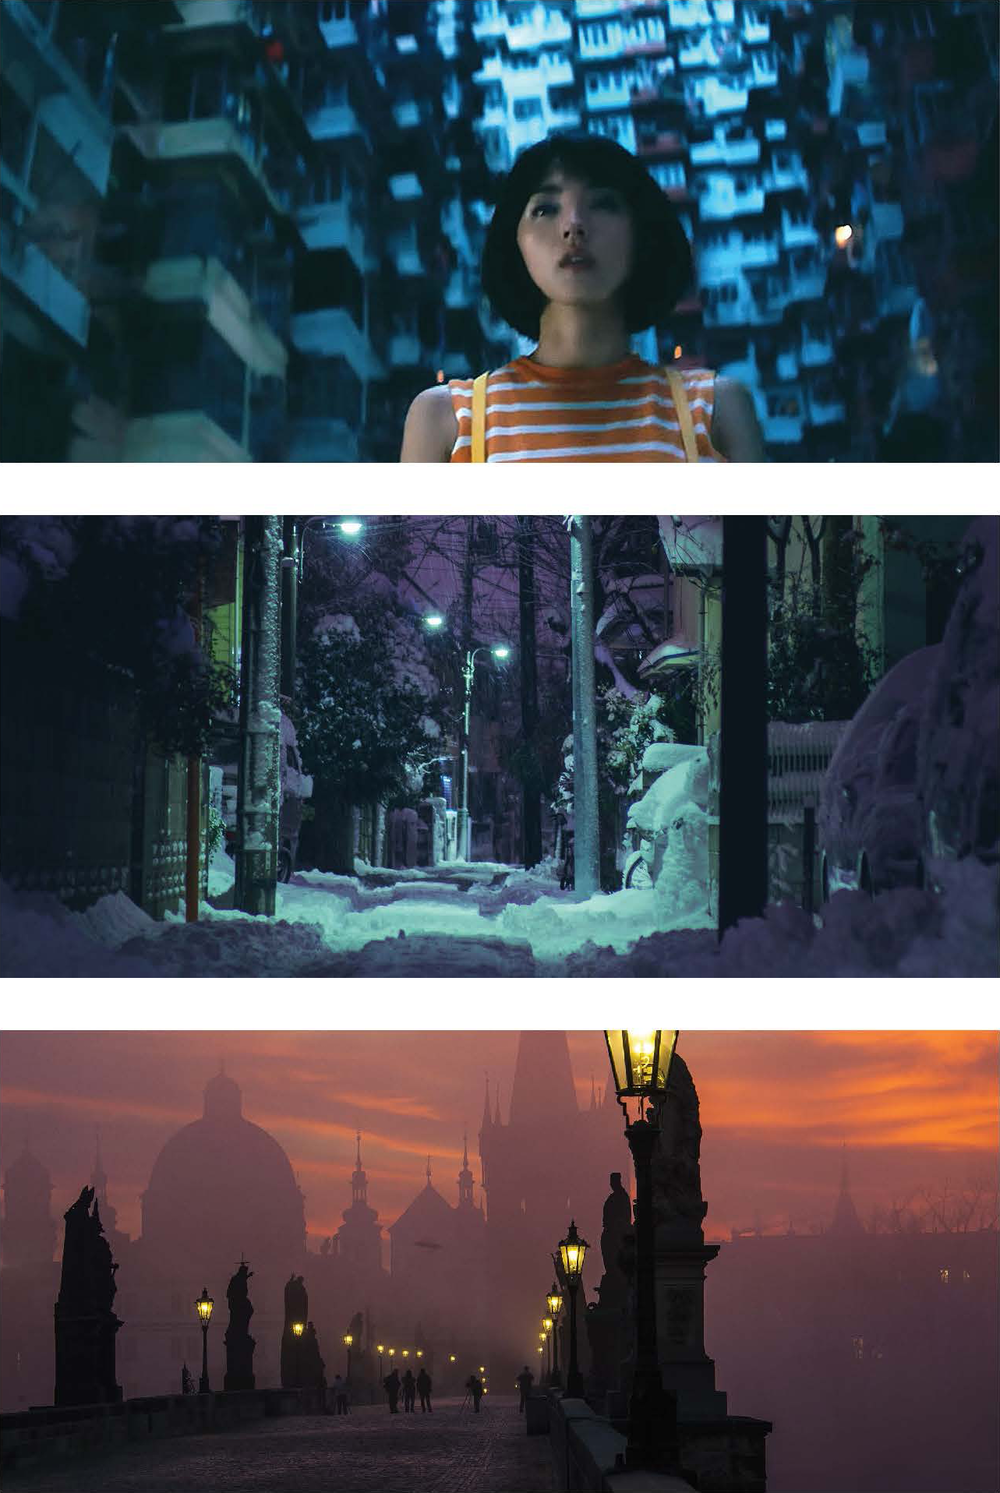 Imagery Inspiration: Inspired by a recent trip to Japan as well as re-watching the original Blade Runner, the image inspiration is a vast spanning city scape with a central, lone inhabitant. Combining these images with the electric color scheme will express a surreal, dreamlike out of body experience, and a feeling of lucidity, and a world that feels simultaneously real and unreal.